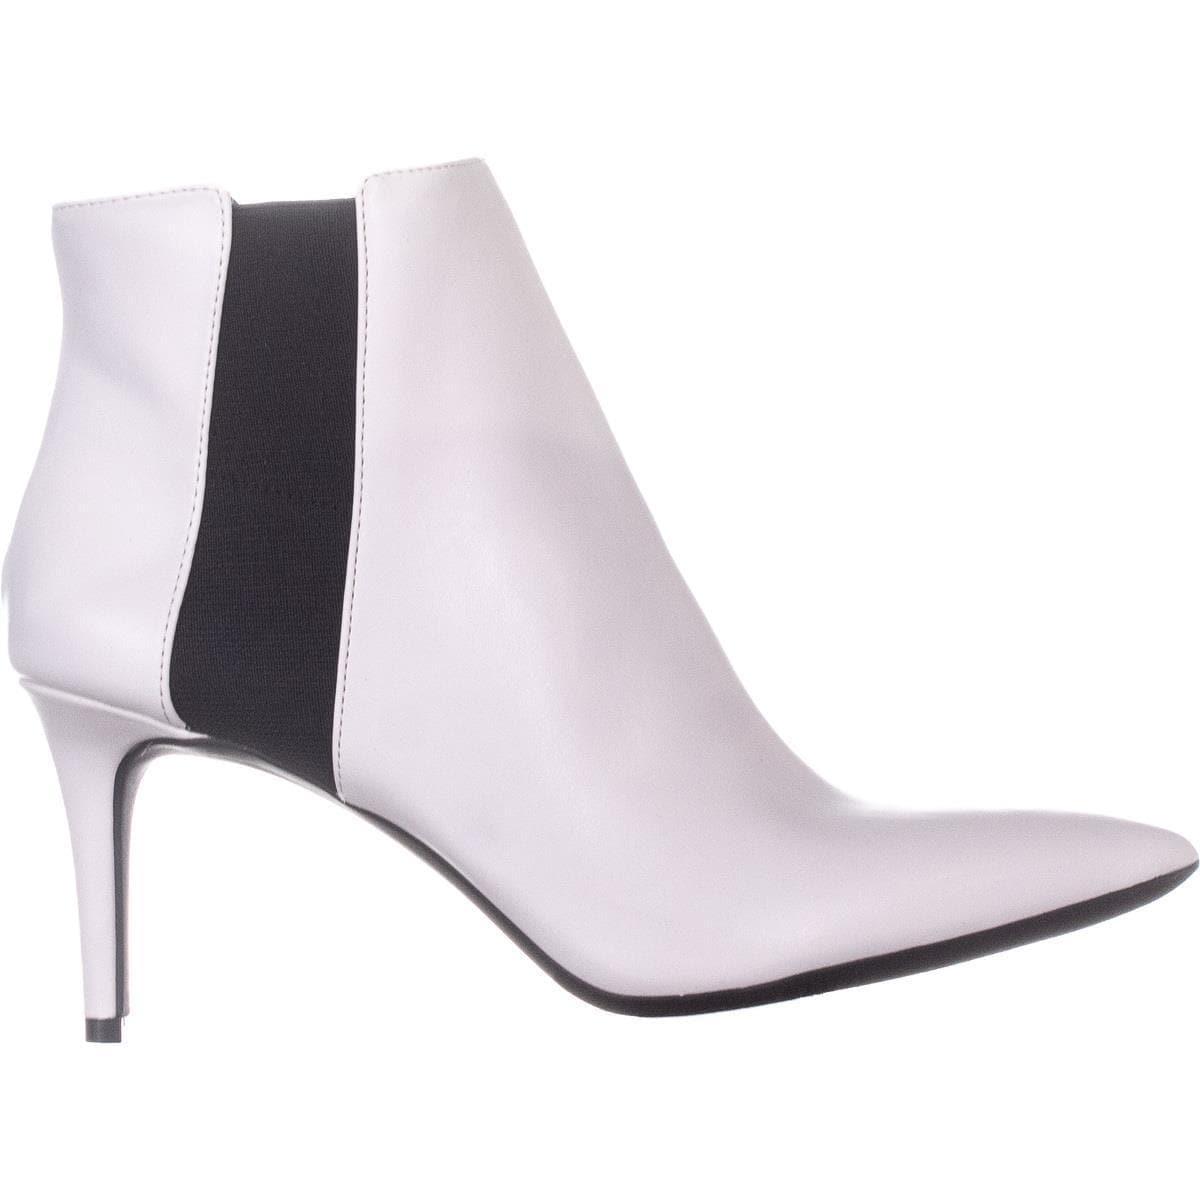 4a0a7f6eba31 Shop I35 Irsia Pointed Toe Ankle Boots, Bright White - On Sale - Free  Shipping On Orders Over $45 - Overstock - 26043375 - 5.5 US